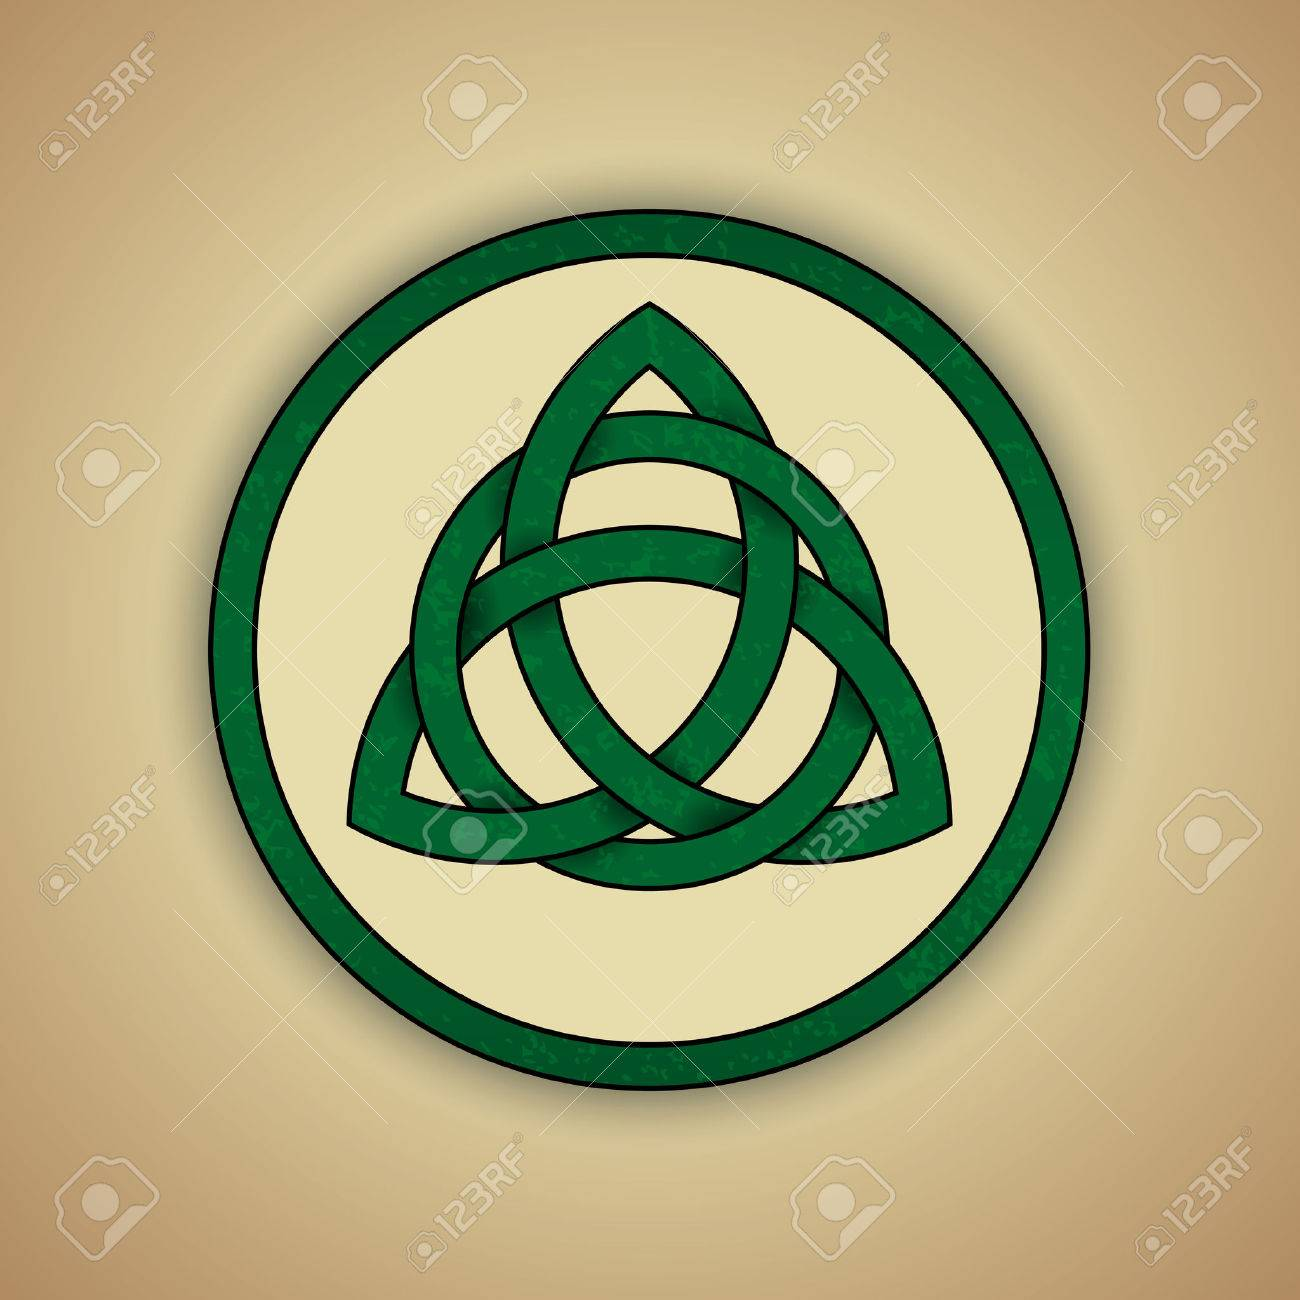 Celtic knot stock photos royalty free business images celtic knot symbol of trinity illustration biocorpaavc Image collections